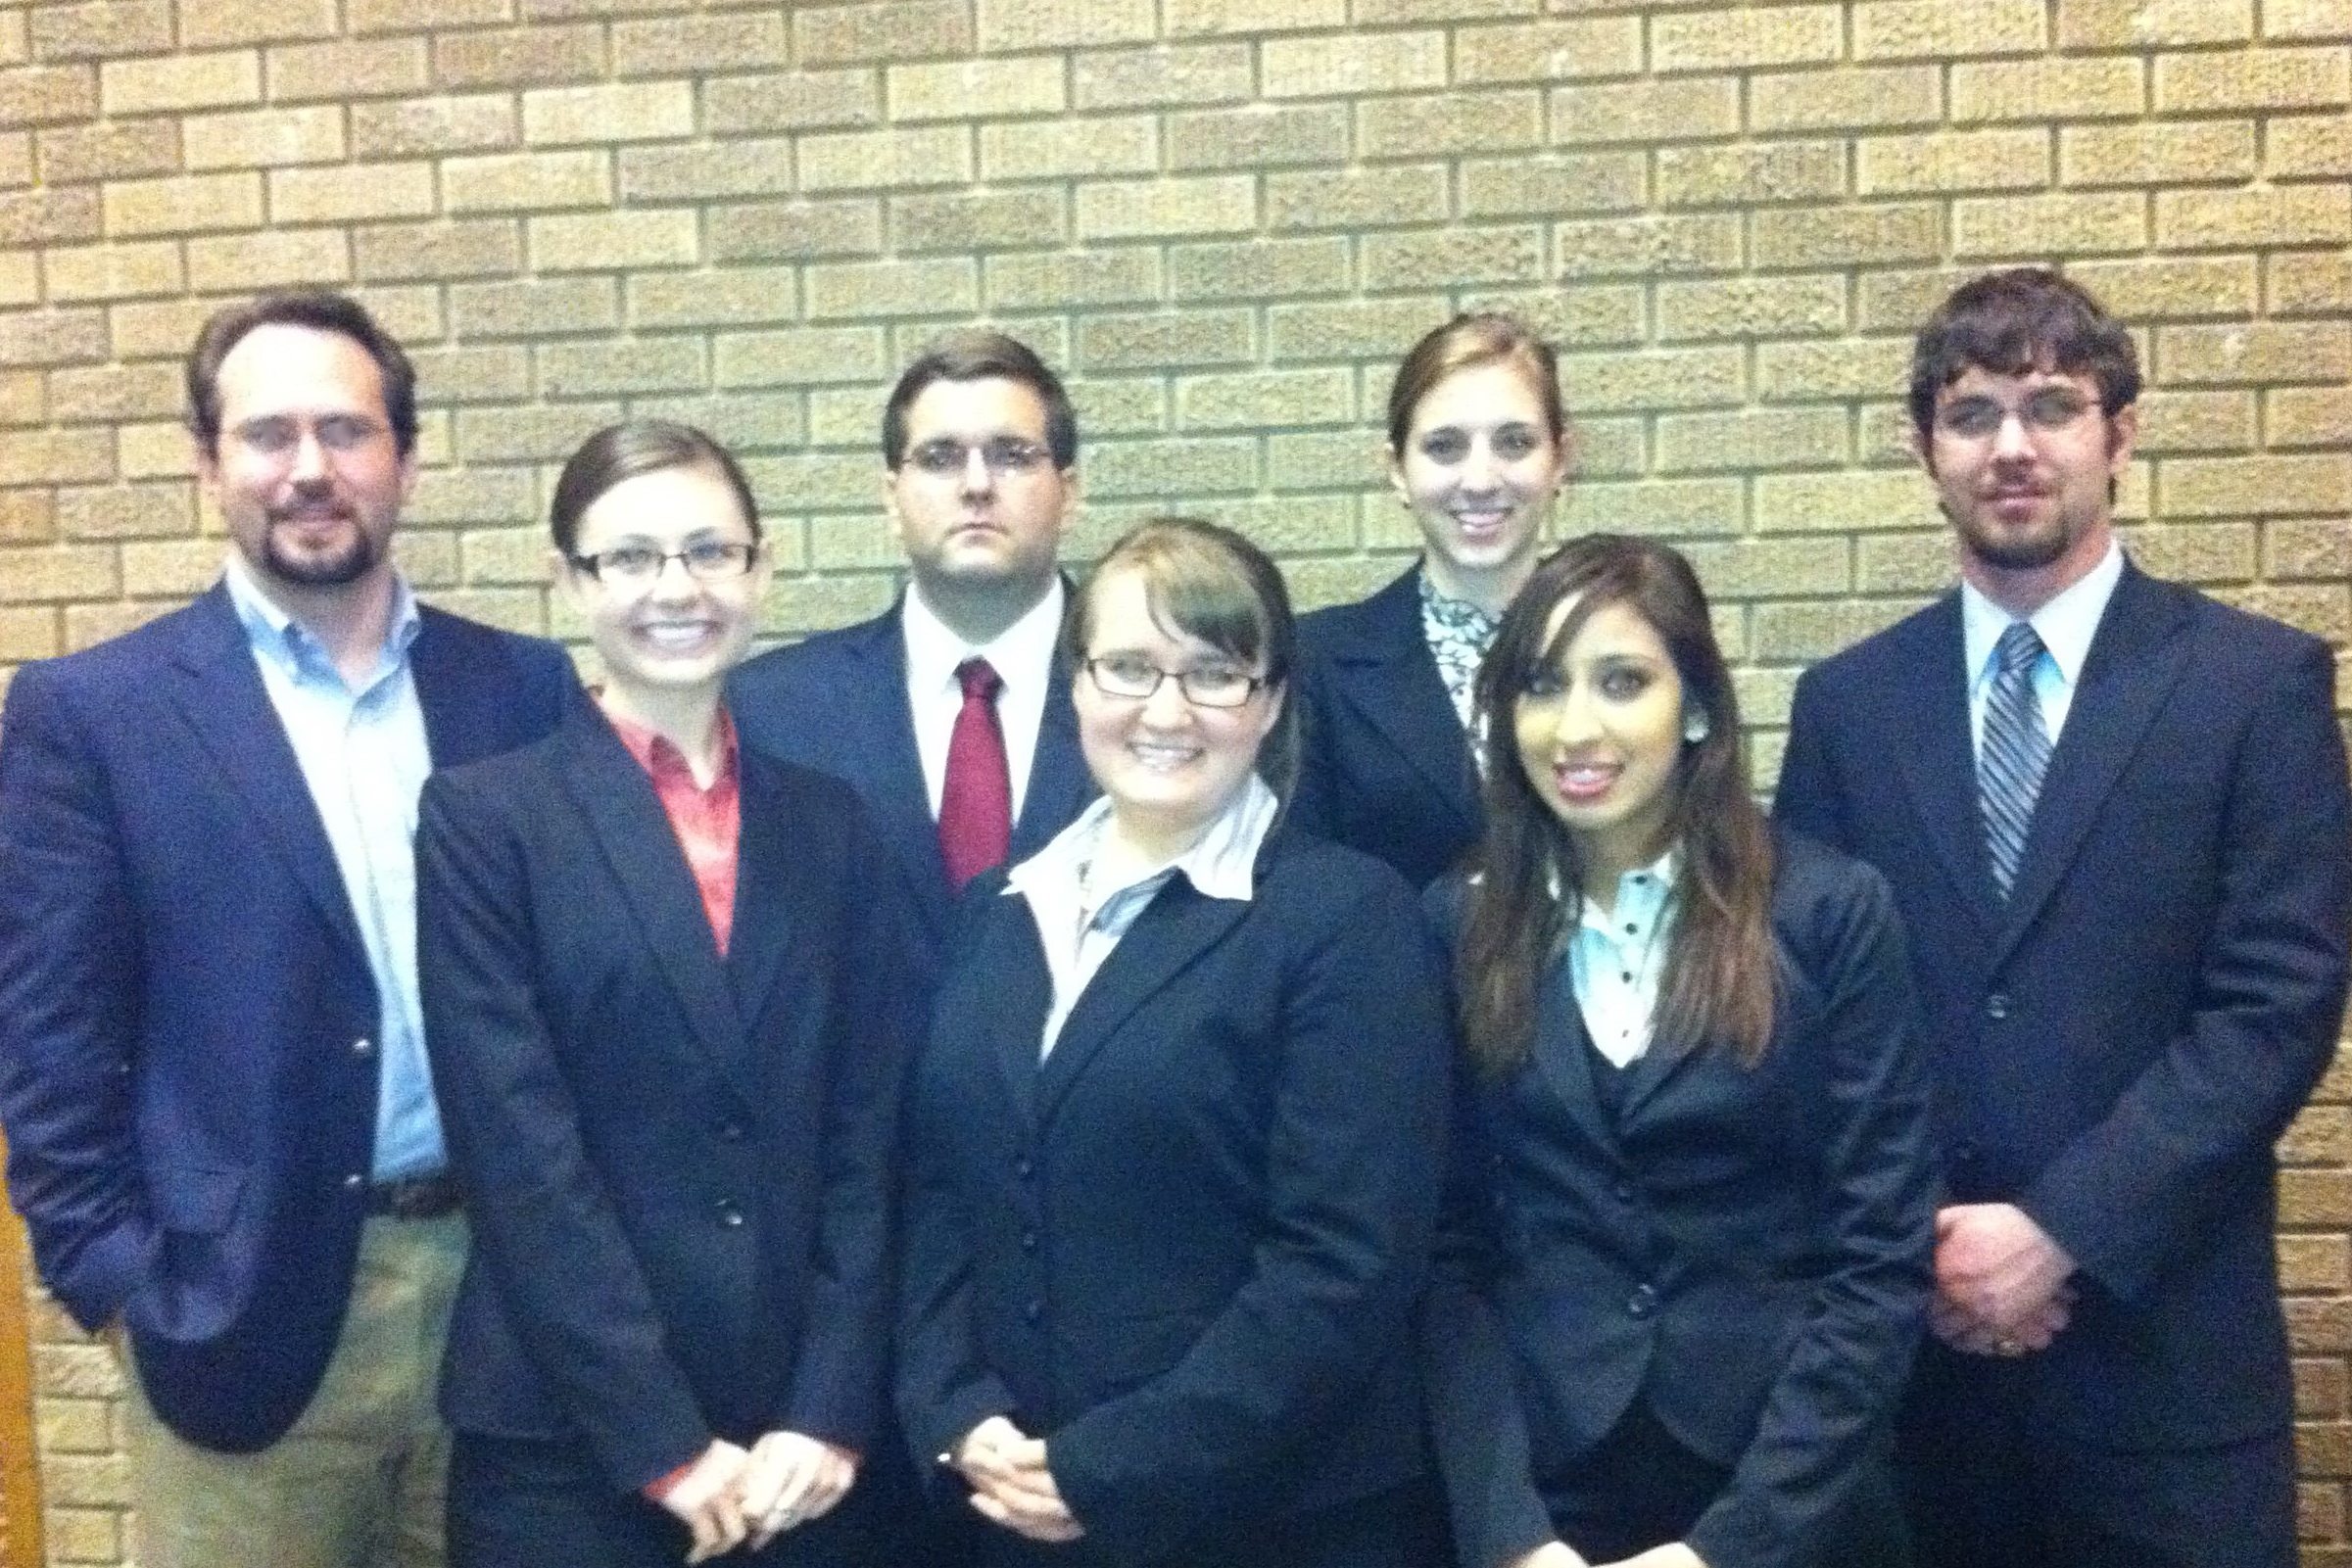 Moot Court_Texas Tech 2010 Group